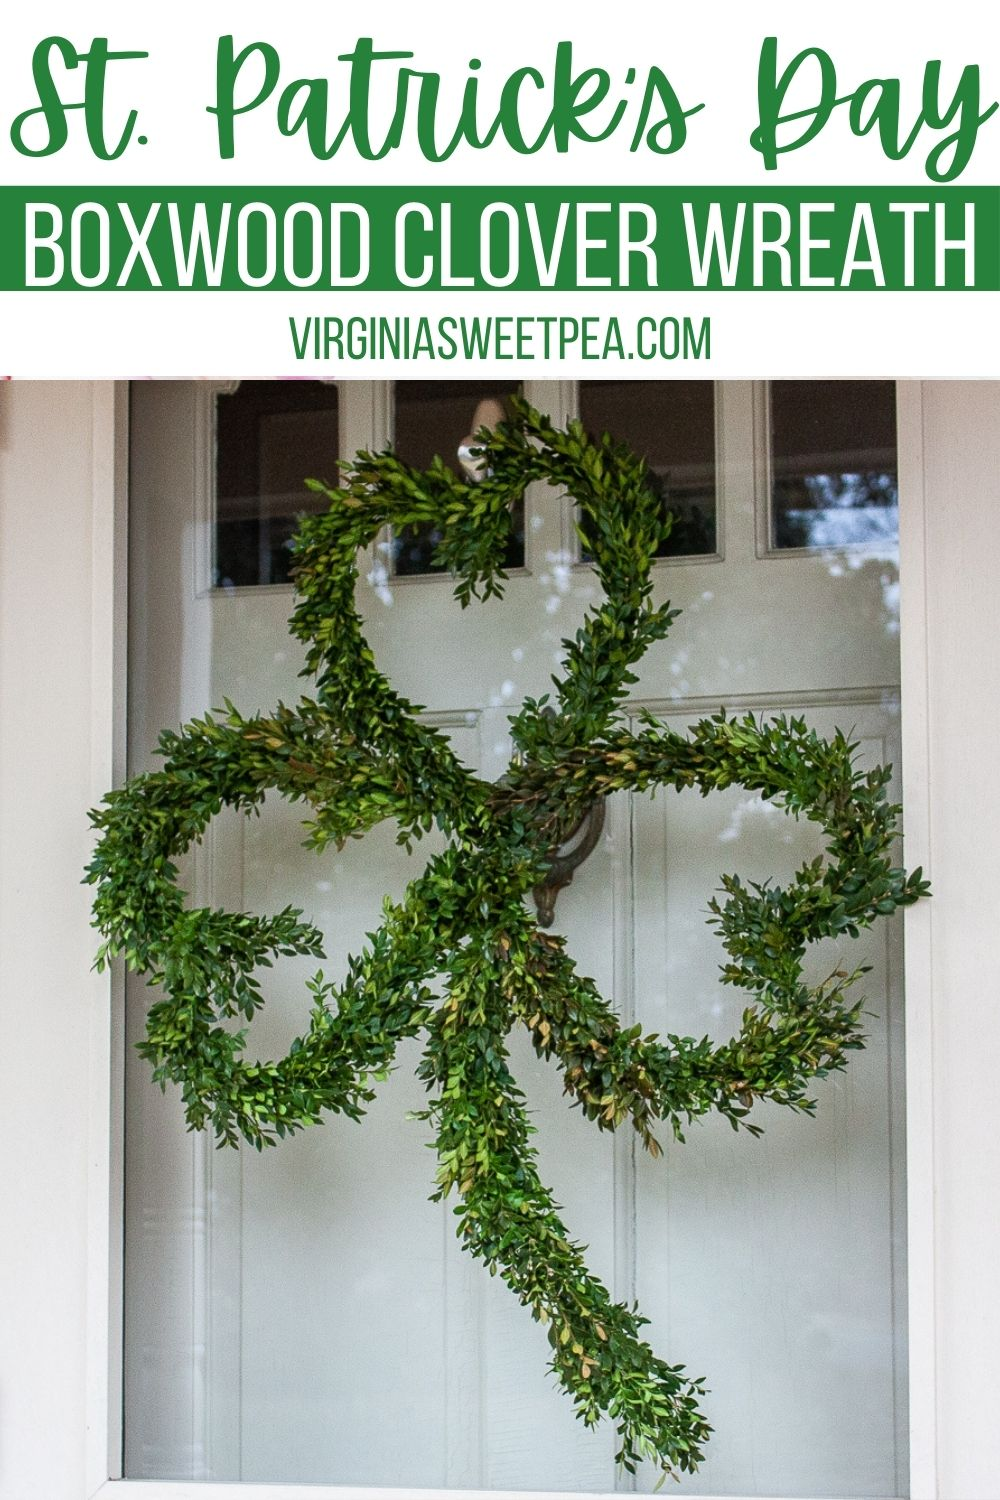 Boxwood wreaths aren't just for Christmas!  Learn how to make a Boxwood clover wreath to use to decorate your front door for St. Patrick's Day.  This wreath is unique and is perfect to use to decorate your home for March. via @spaula